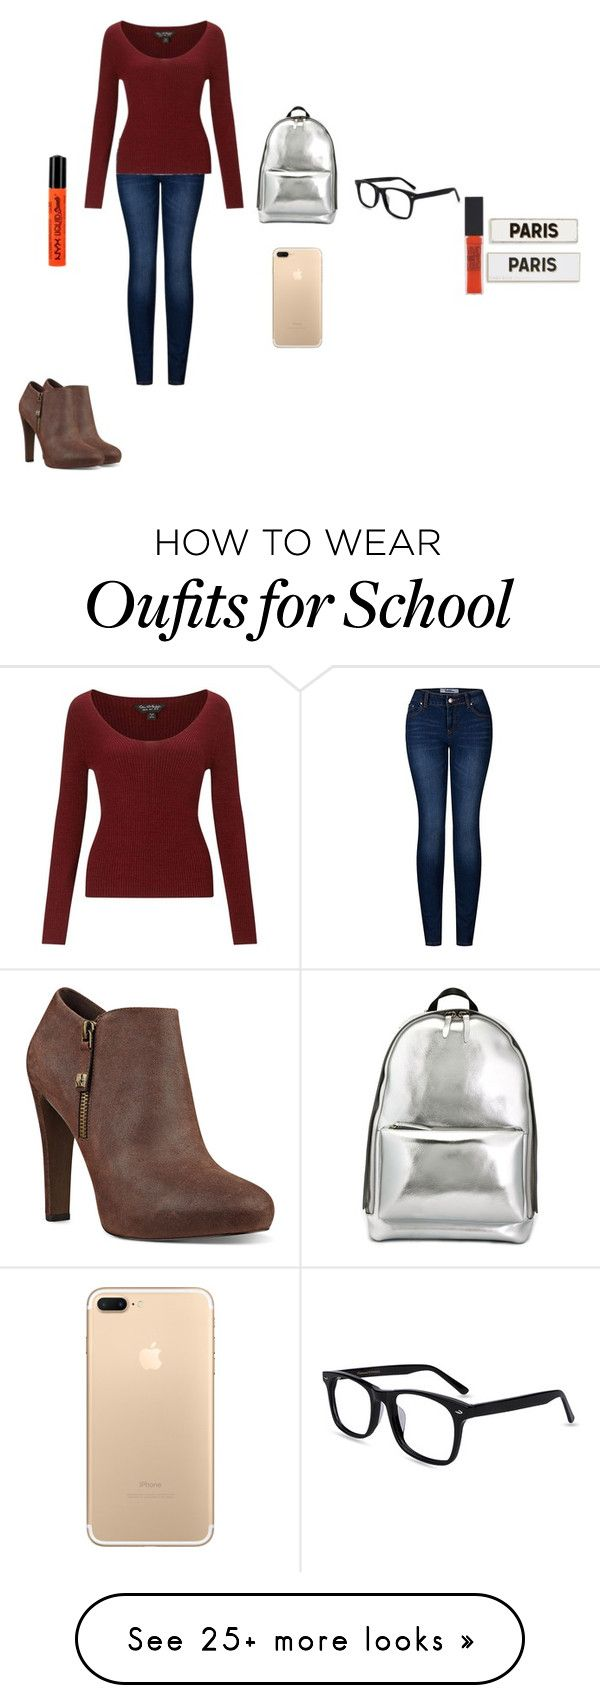 """""""today's a half day of school!"""" by lindsayxoxo2004 on Polyvore featuring 2LUV, Miss Selfridge, Nine West, 3.1 Phillip Lim, NYX, Maybelline and Rosanna"""